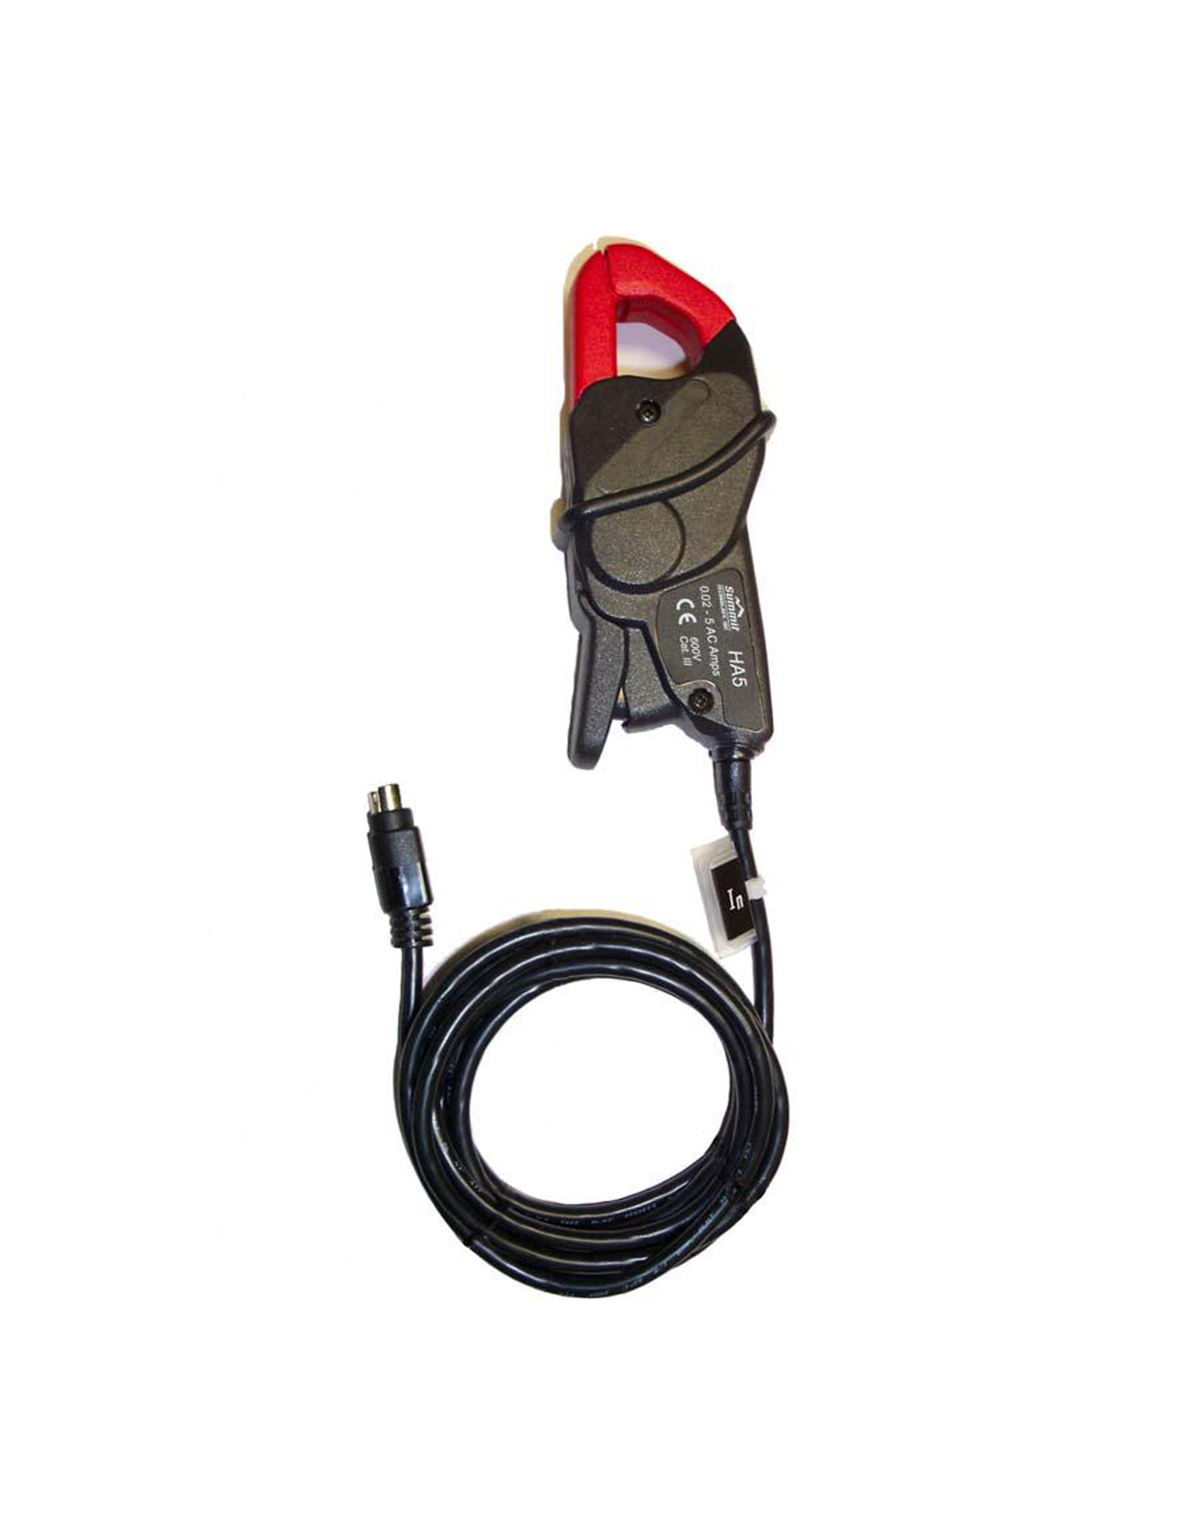 ATP On-Line II™ Portable AC Clamp 0.02 - 5.0A. CAT III, 600V